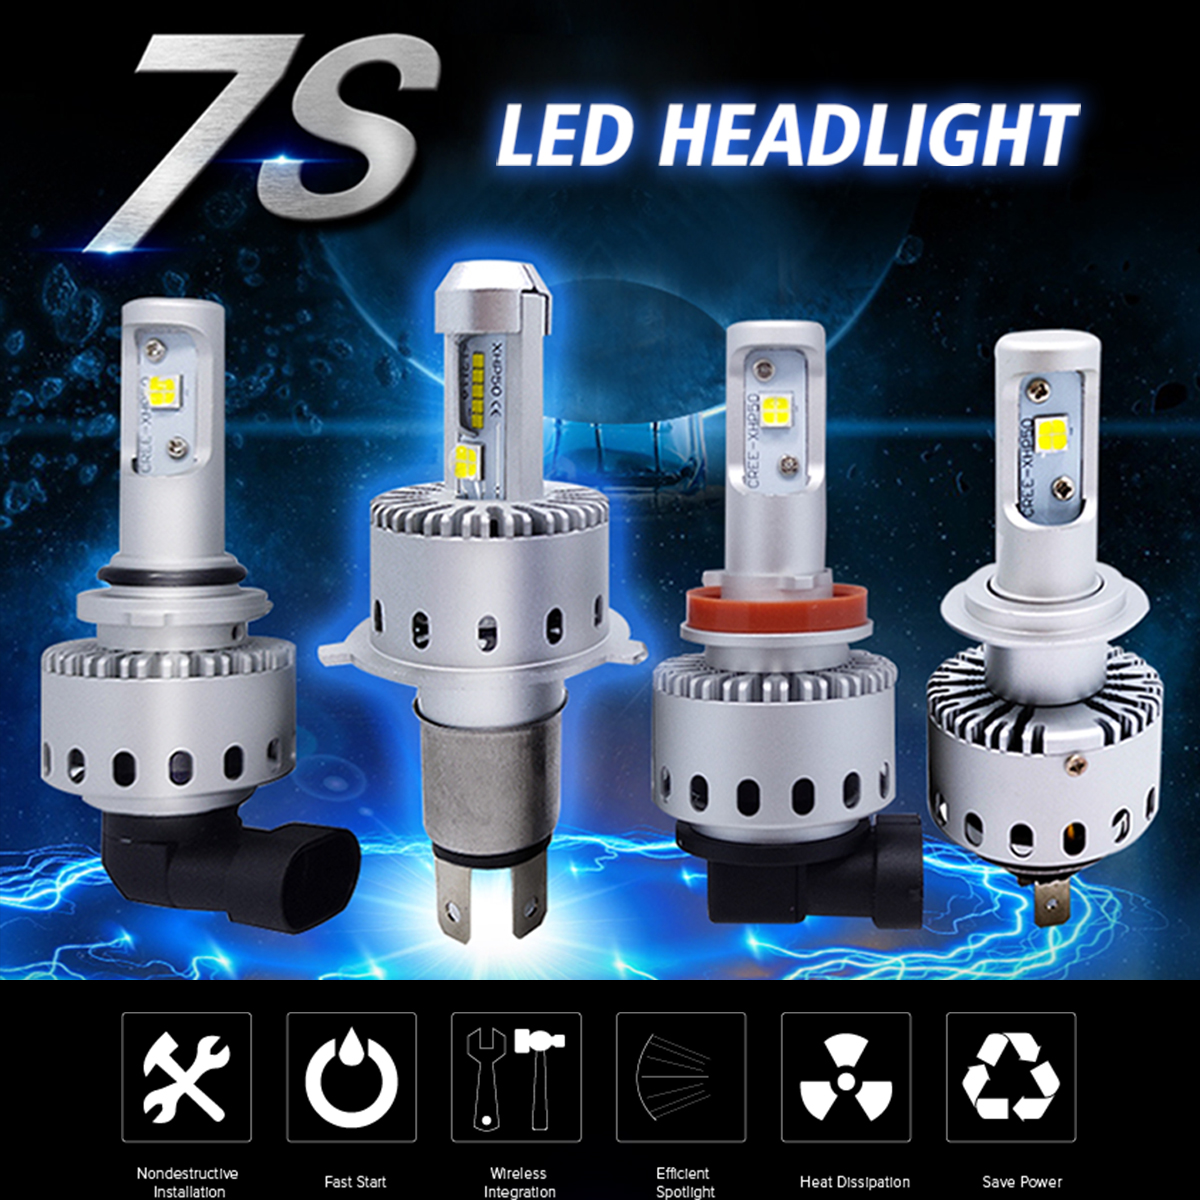 Autoleader 7S 40W 8000LM Car LED Headlights Bulbs H1 H3 H4 H7 H11 9005 9006 6500K White